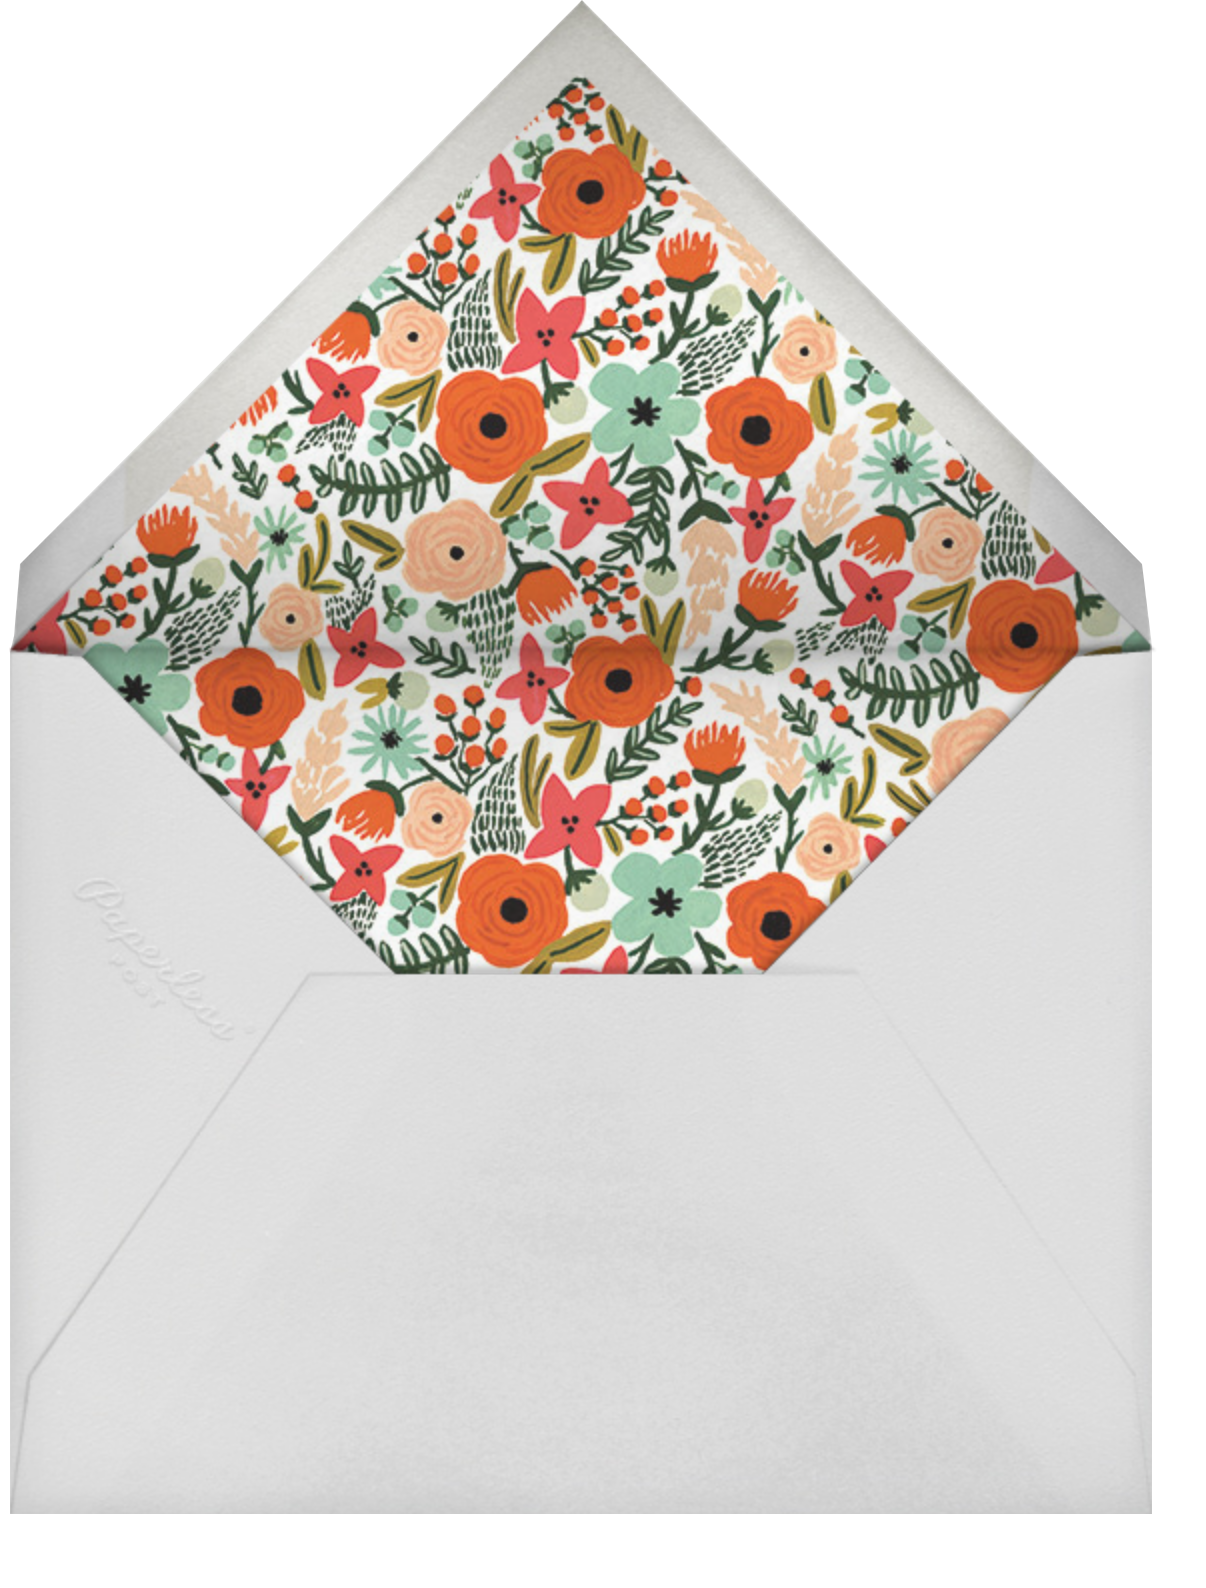 Floral Heart - Rifle Paper Co. - 1st birthday - envelope back